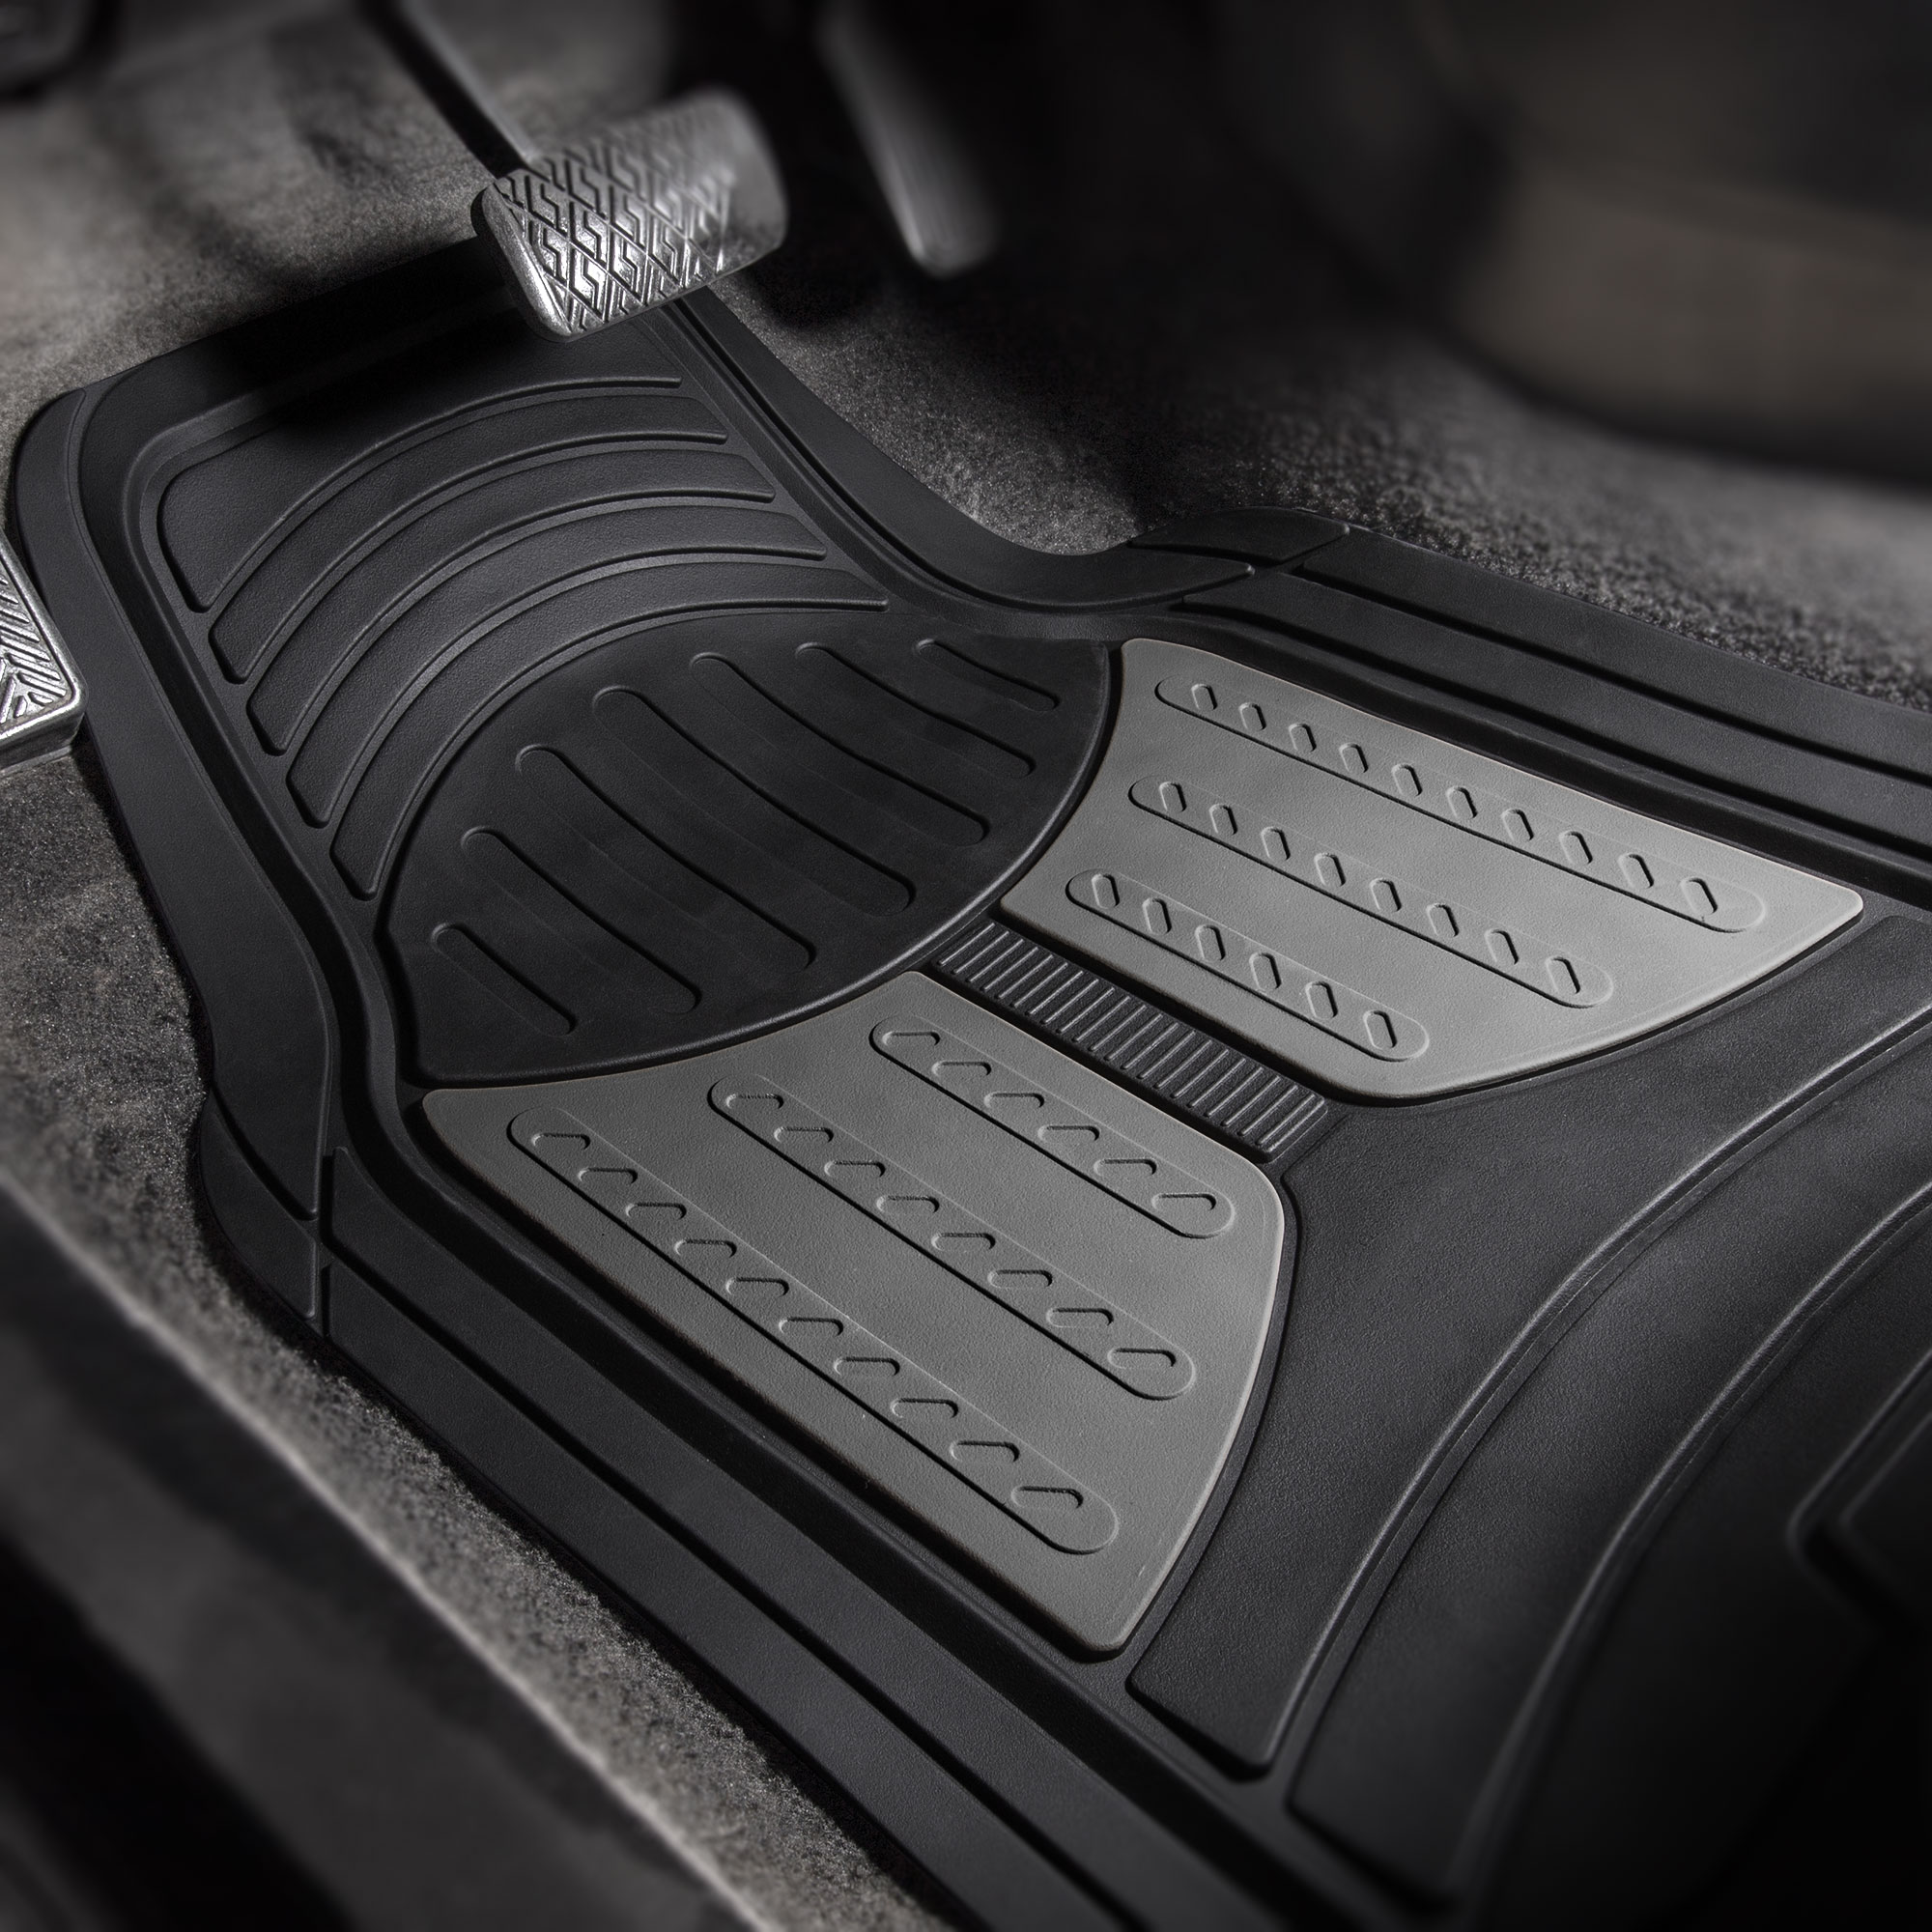 thumbnail 17 - Car Floor Mats for All Weather Rubber 2-Tone Design Heavy Duty - 4 Pc Set